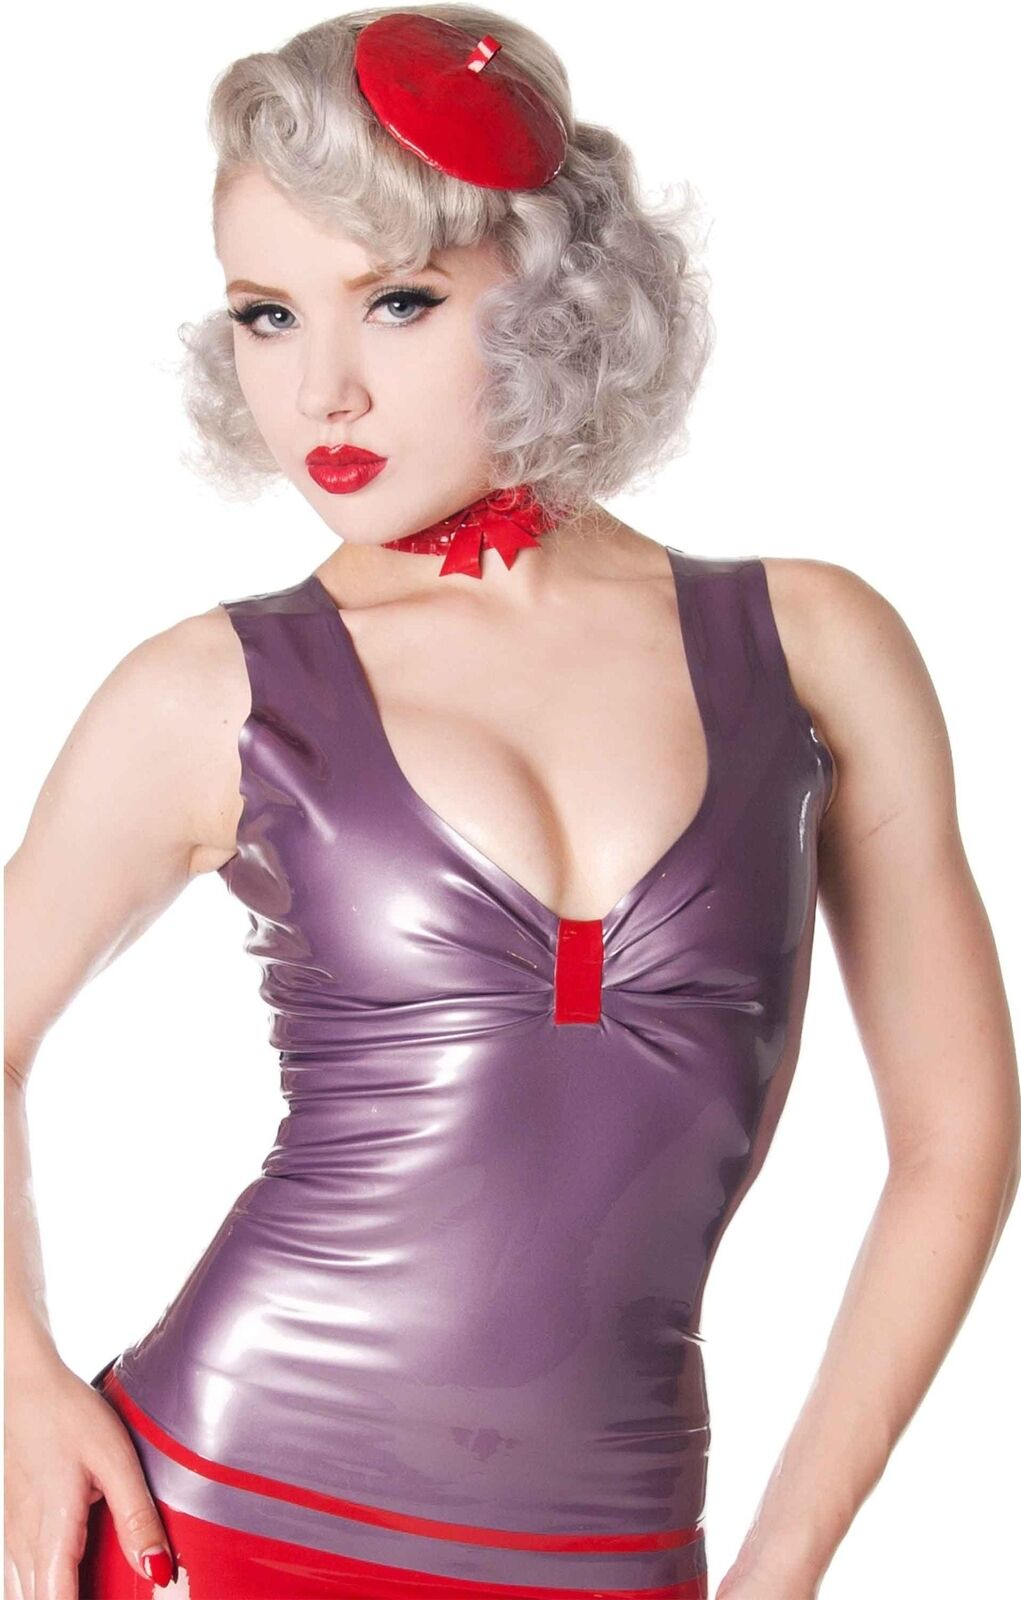 7519570b77 Westward Bound Madame Adelaide Latex Top Pearl Sheen Lilac with with with  rot Trim 201253